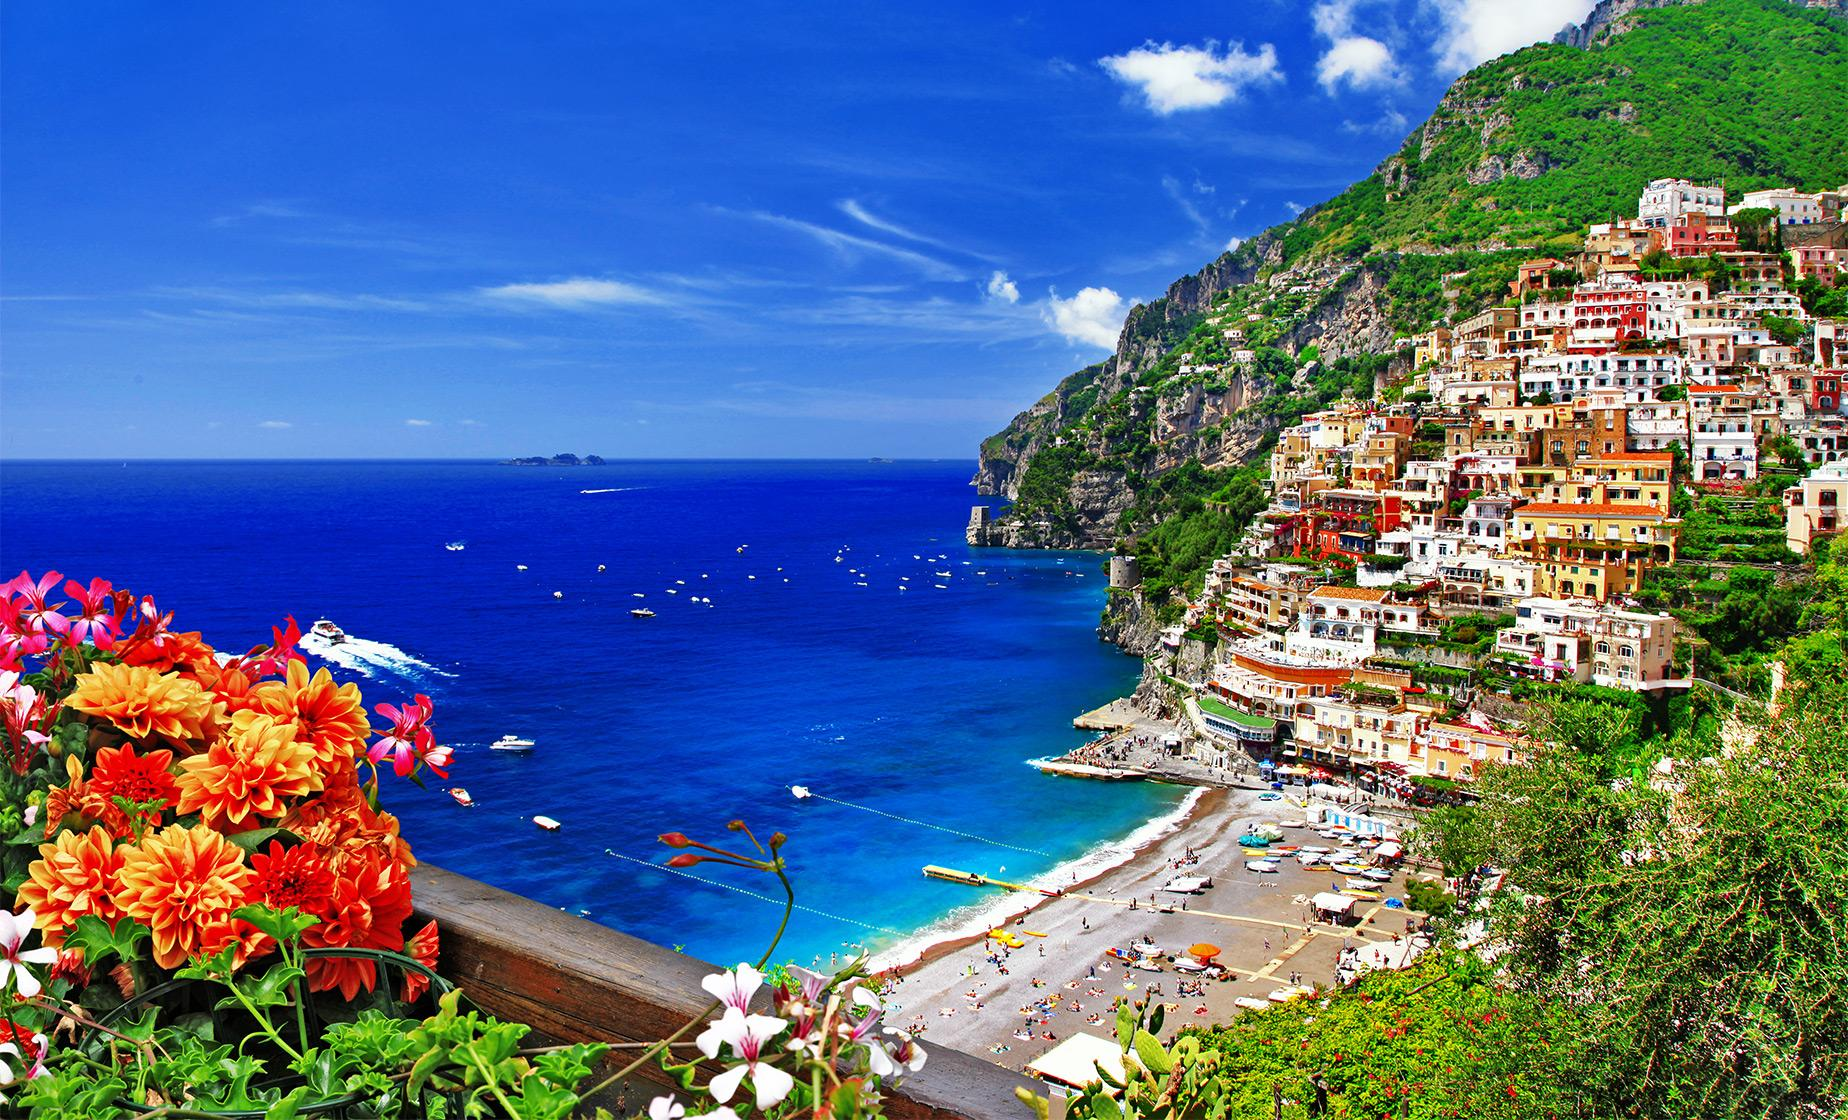 Explore Amalfi and Beach | Visit Positano, Amalfi and Ravello